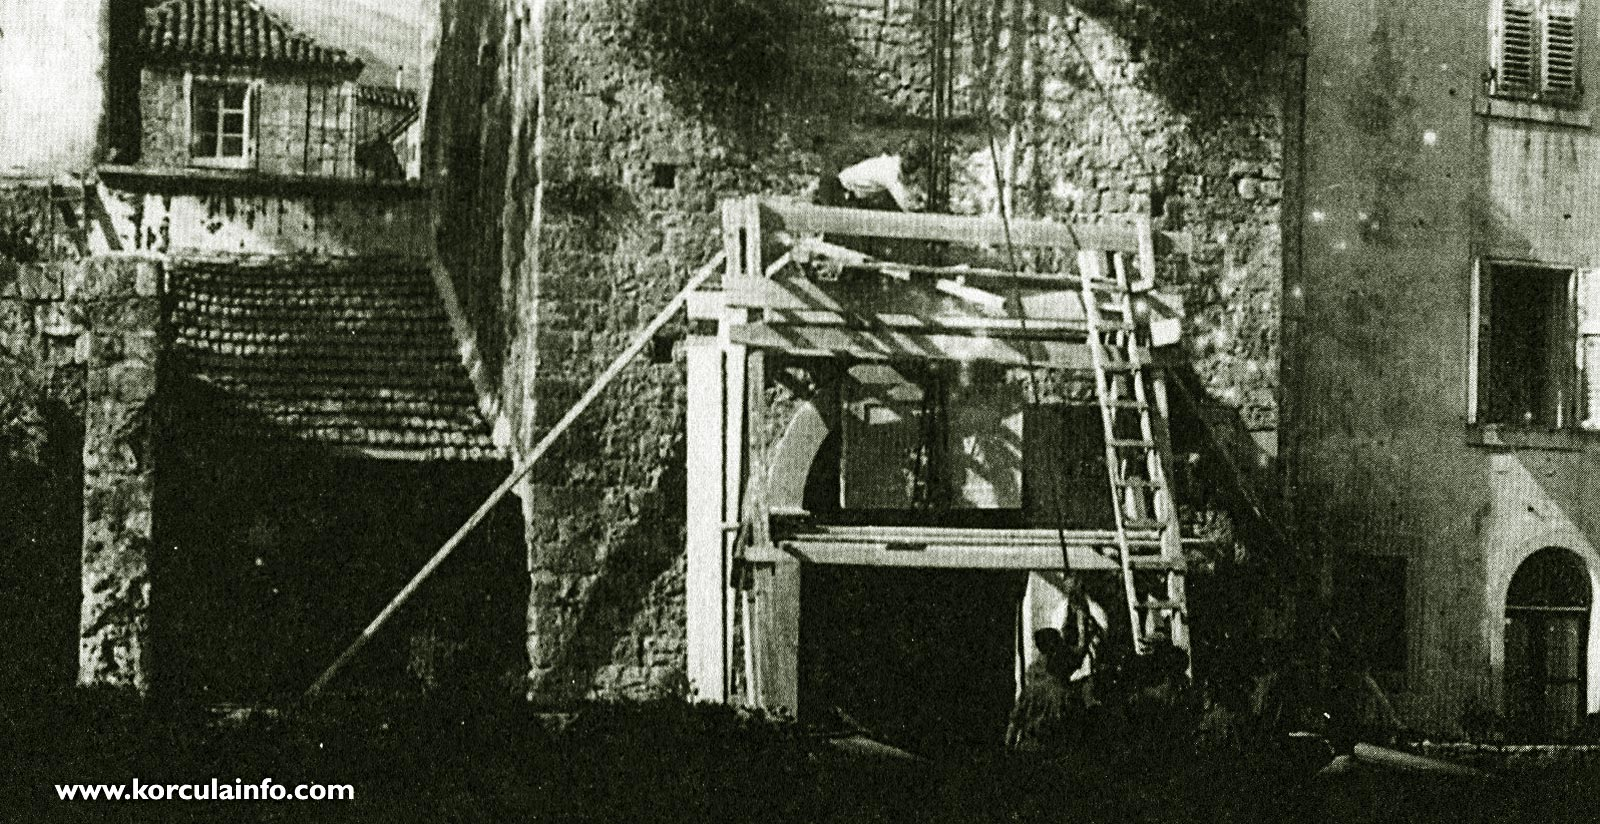 Erecting the plaque in 1925 - In memory of the coronation of King Tomislav,Korcula